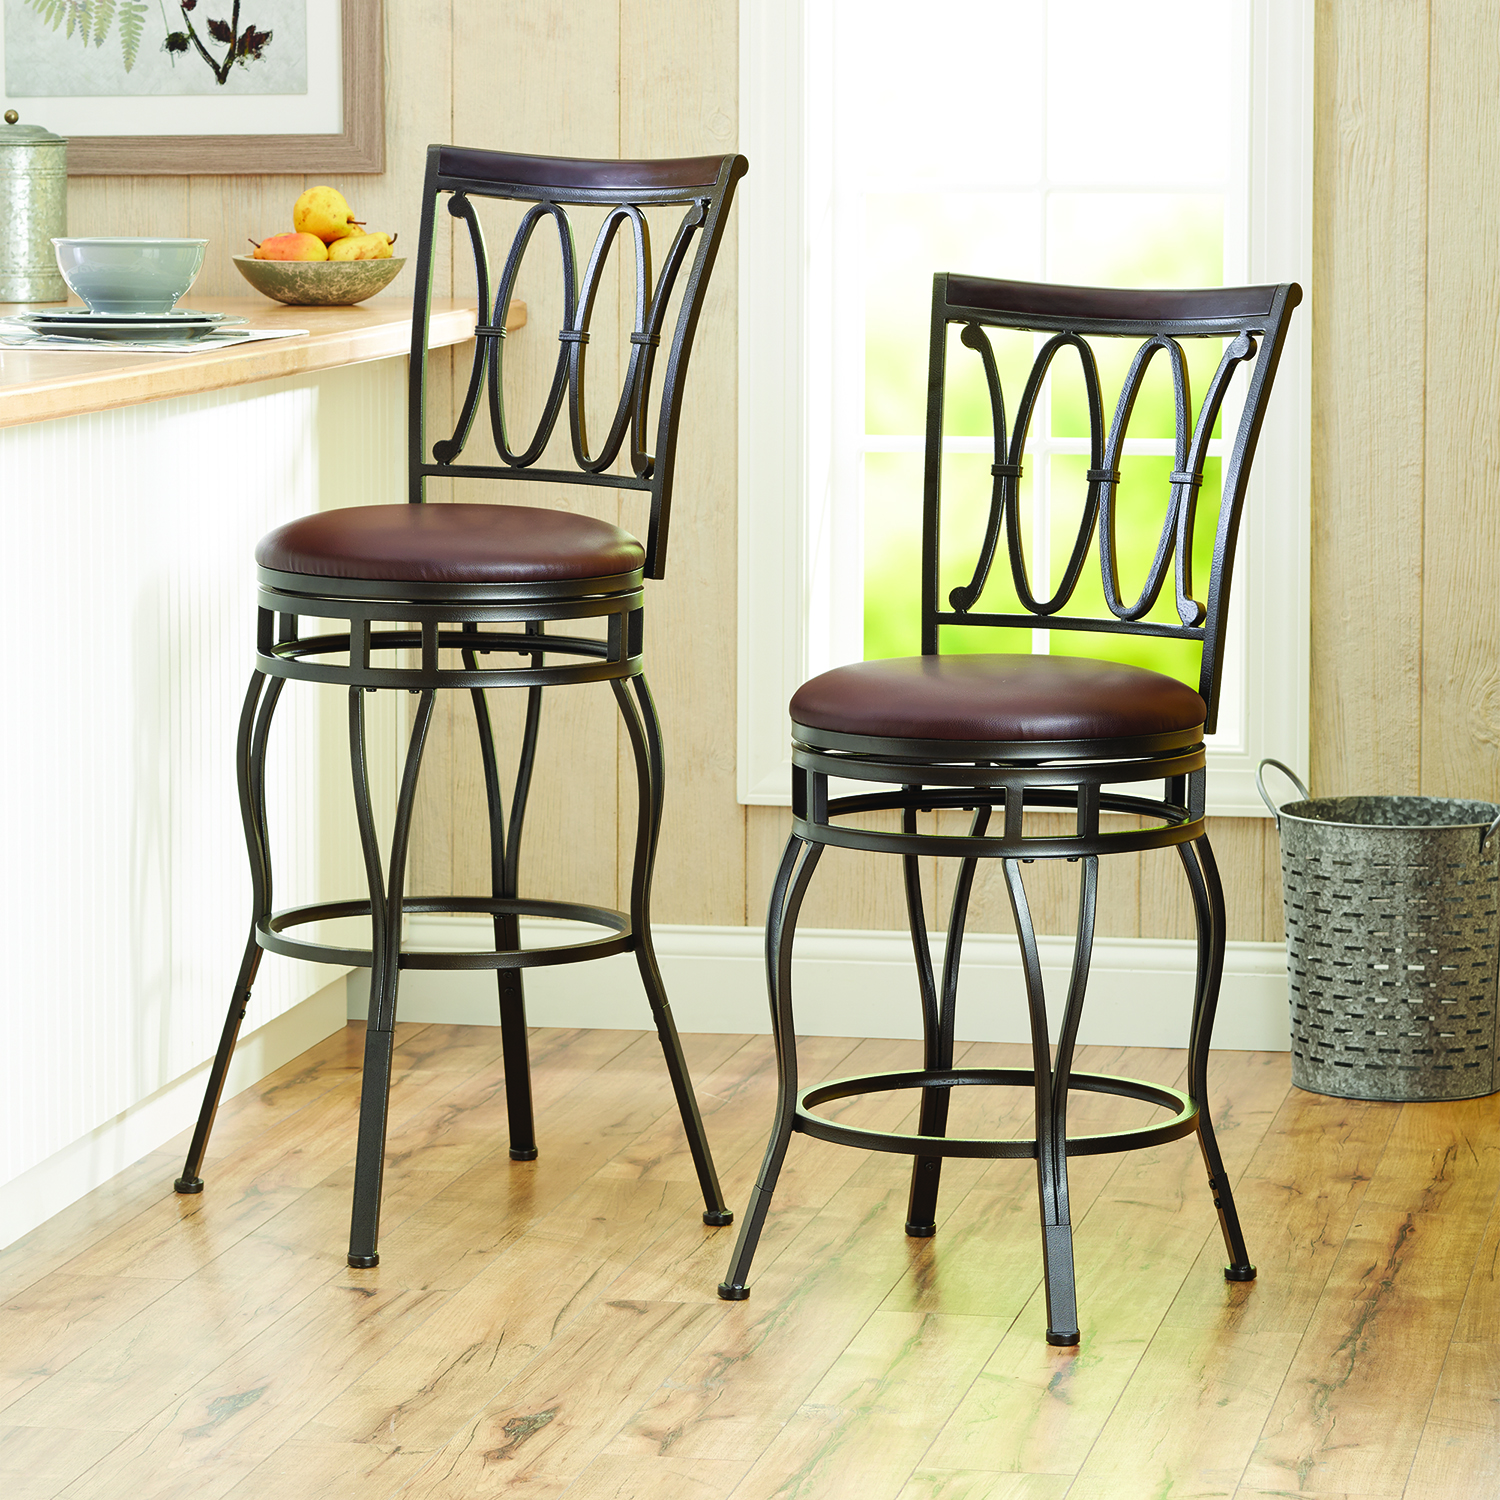 Better Homes and Gardens Adjustable Barstool Oil Rubbed Bronze Image 2 of 4 & Better Homes and Gardens Adjustable Barstool Oil Rubbed Bronze ... islam-shia.org